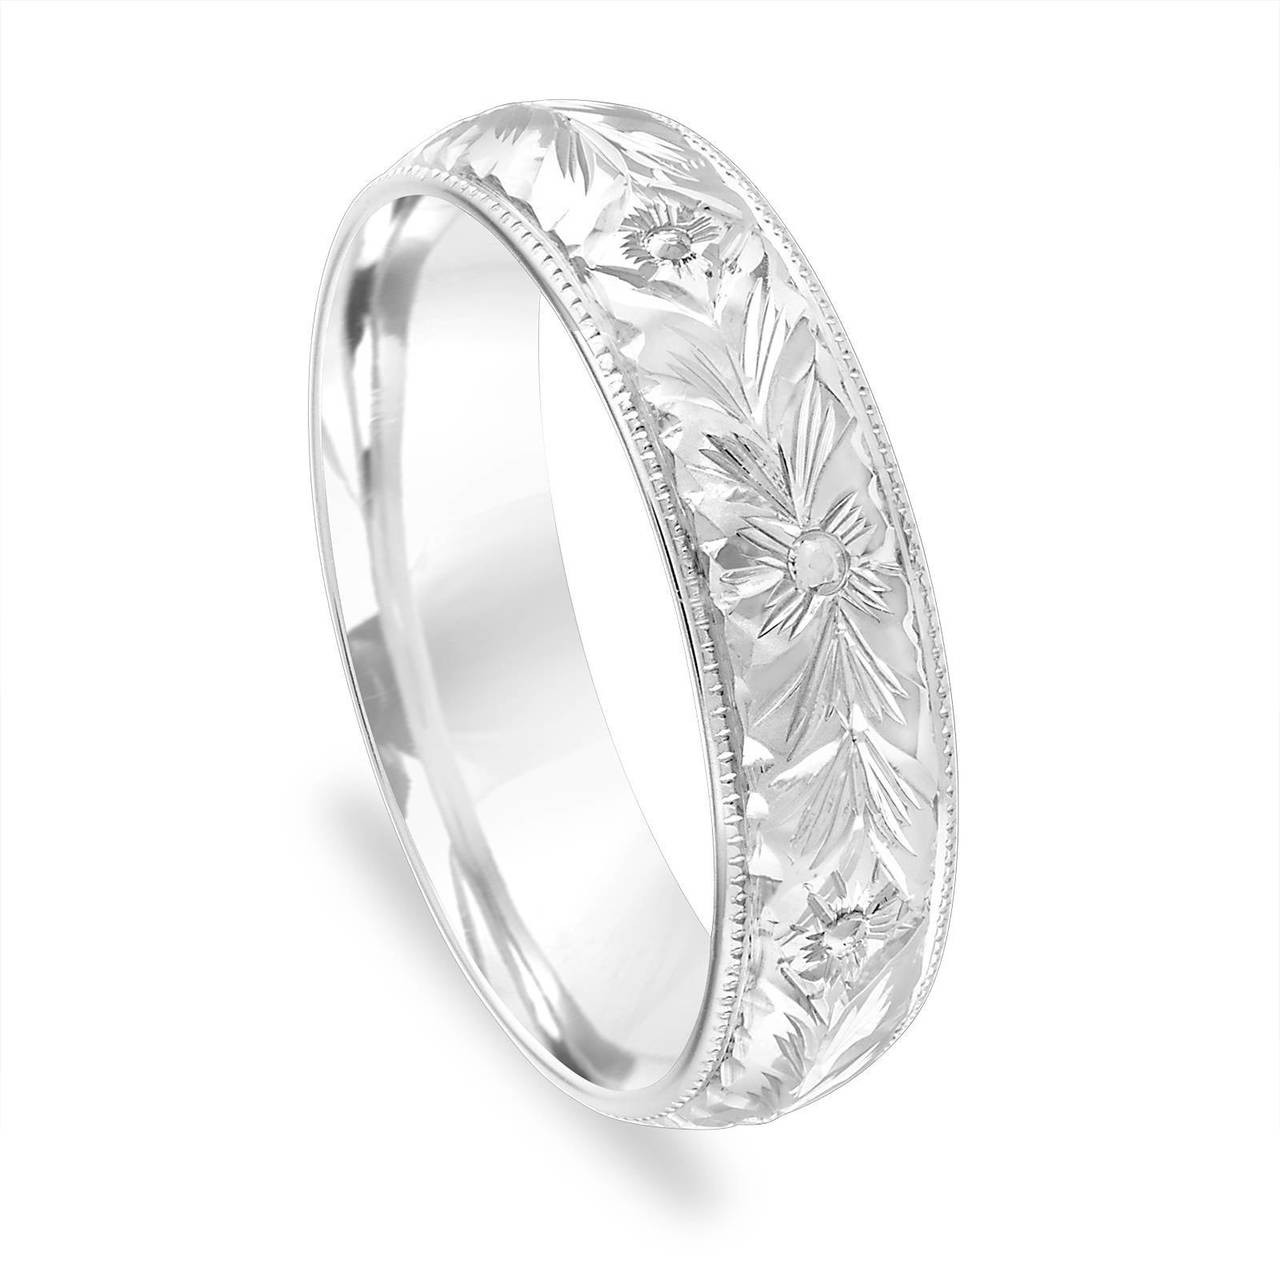 Hand Engraved Wedding Band Mens Vintage Wedding Ring 5 Mm Womens Wedding Band Unique Antique